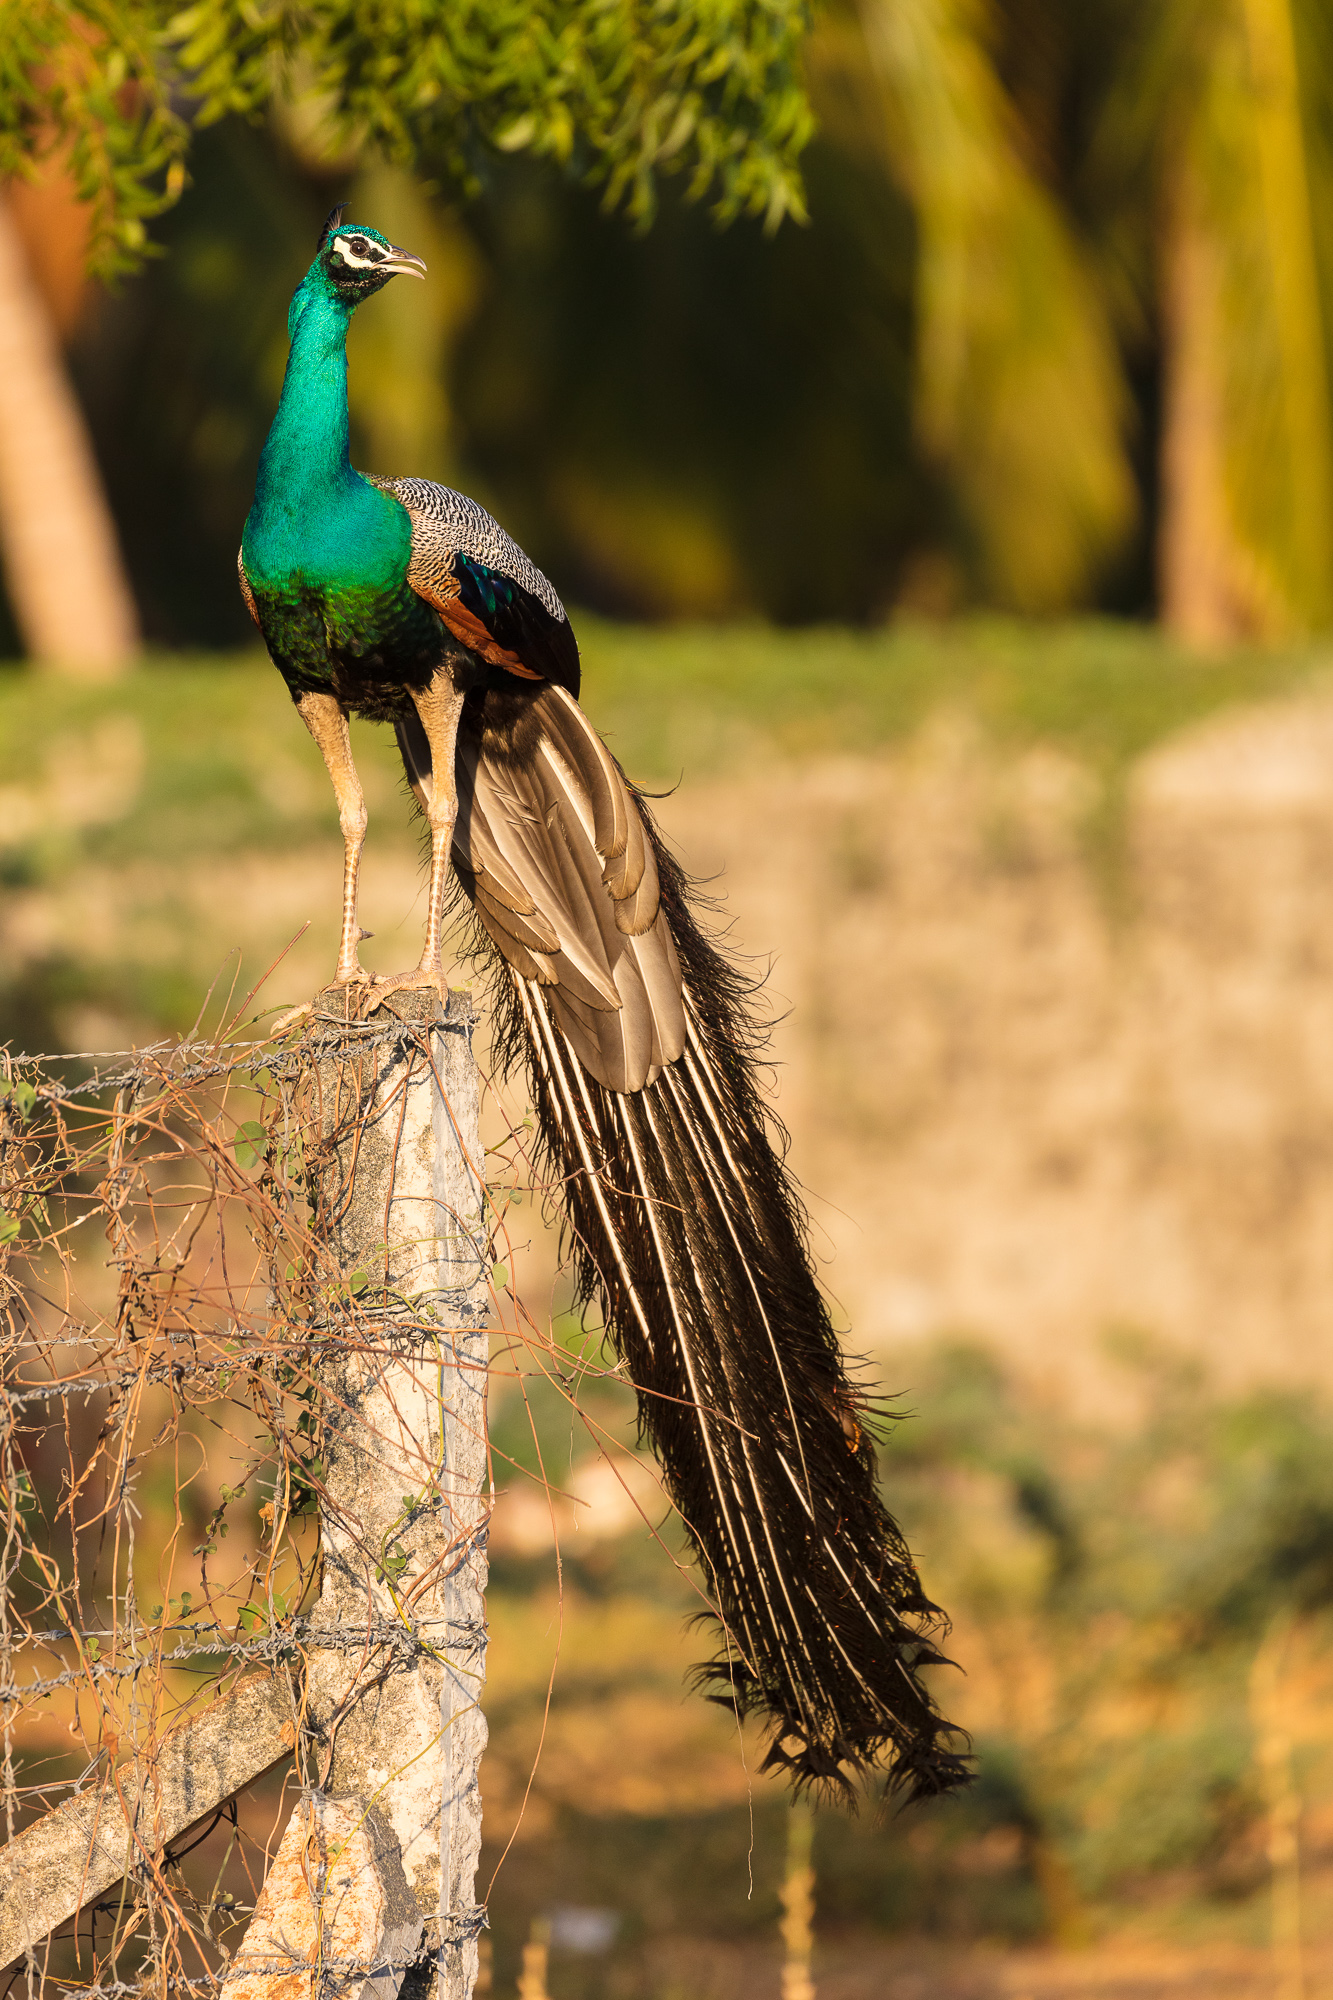 An indian peacock perches atop a wooden fencepost, Tamil Nadu, India.